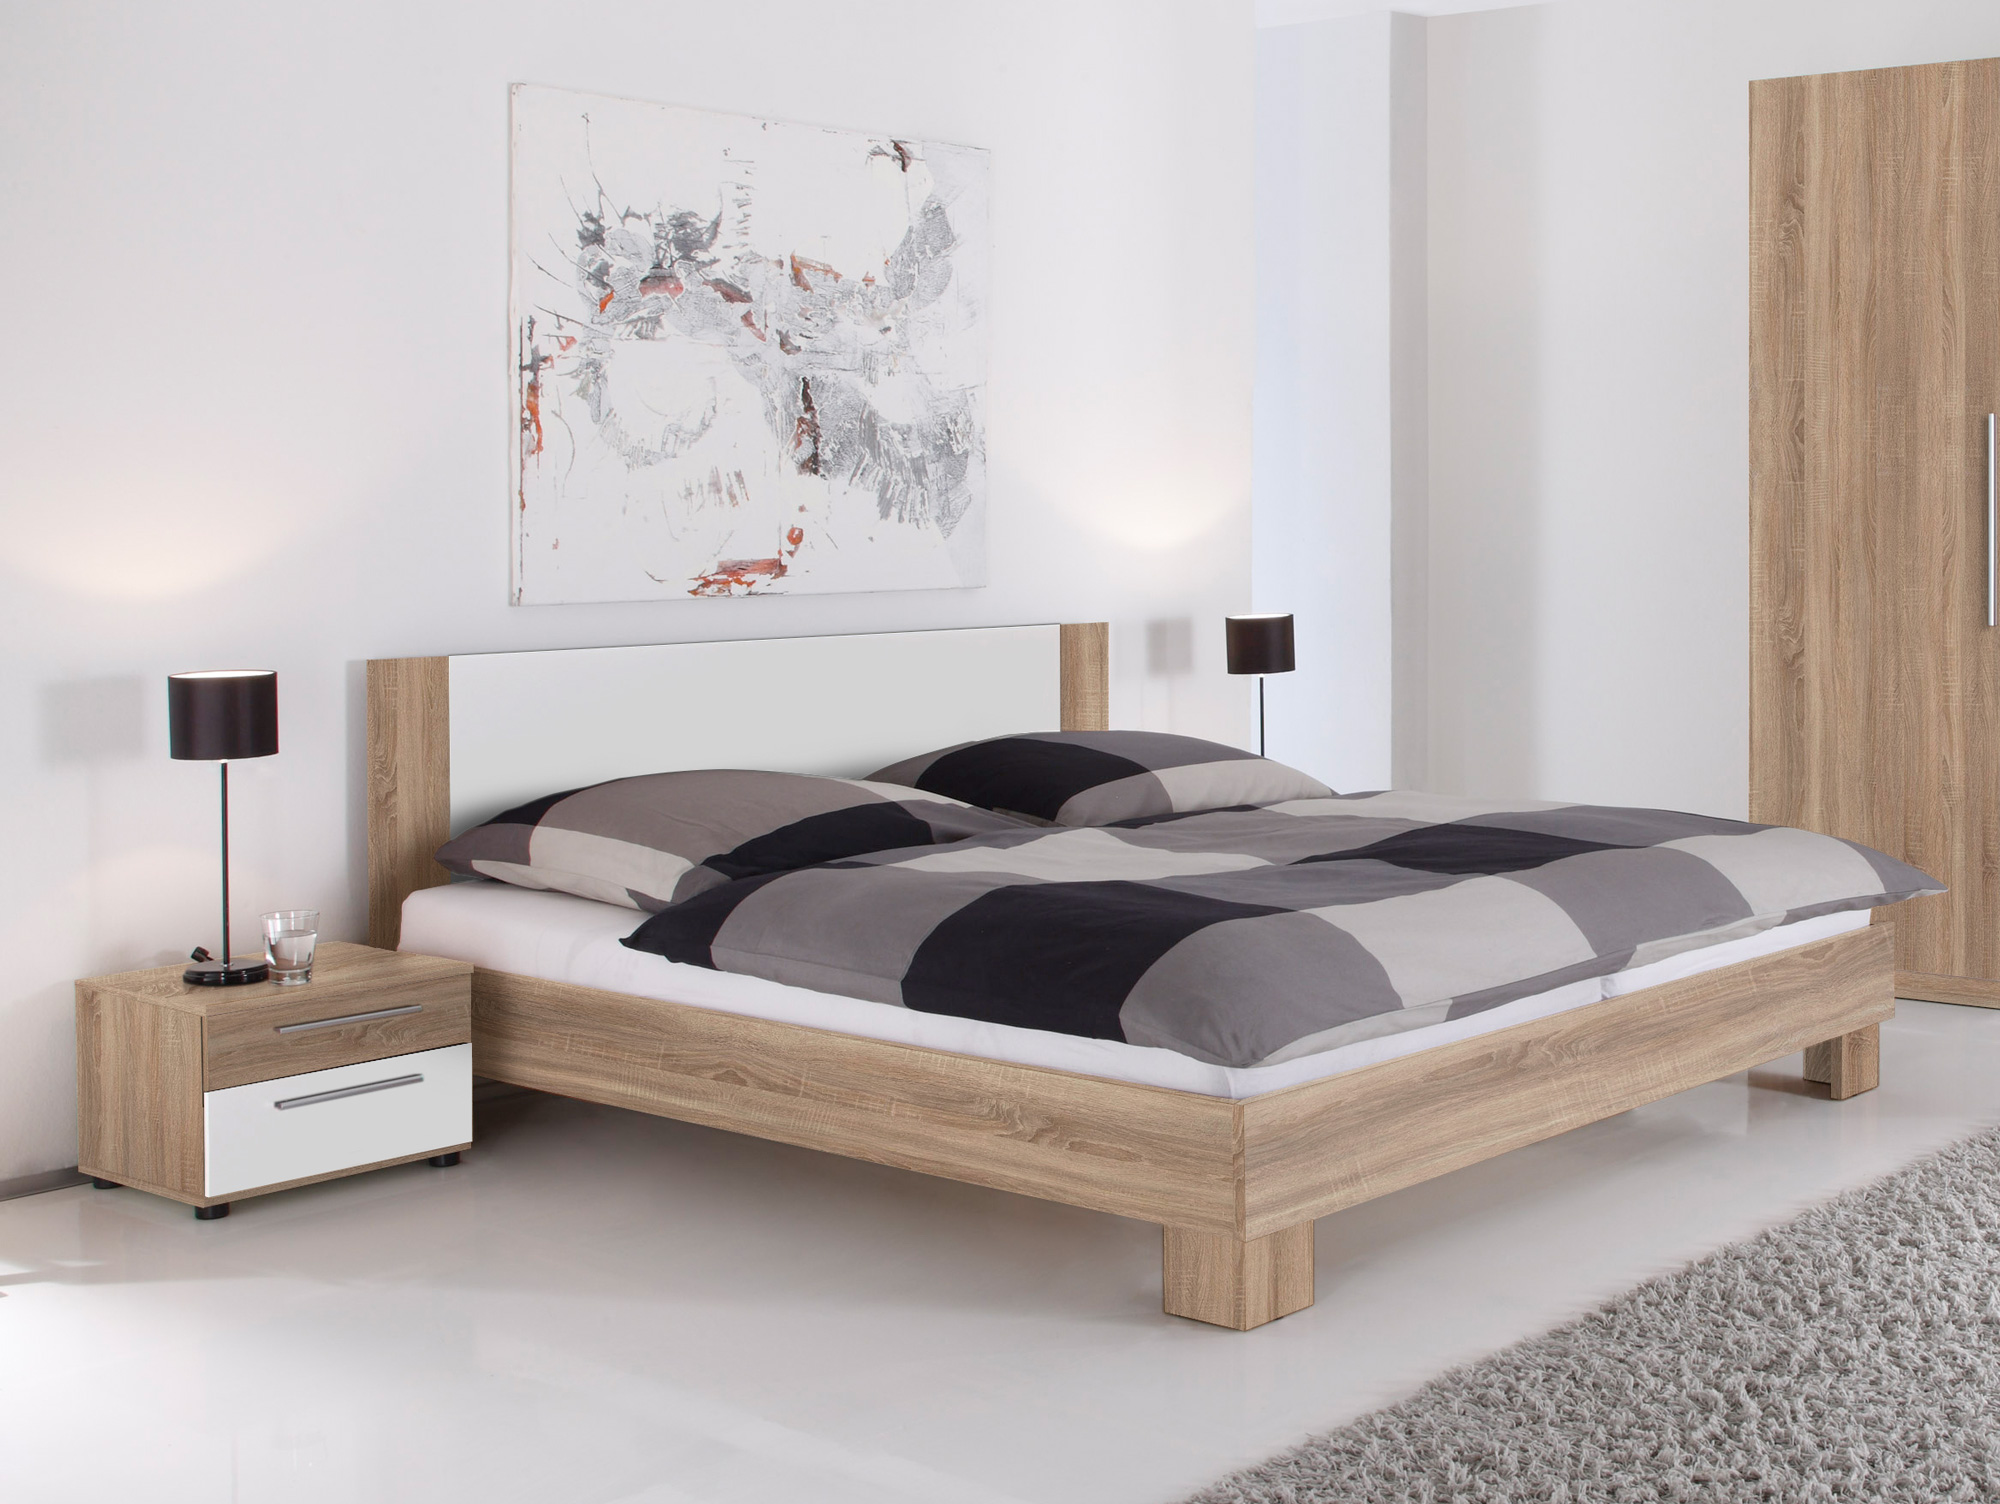 martina doppelbett inkl 2 nachttische eiche sonoma wei. Black Bedroom Furniture Sets. Home Design Ideas